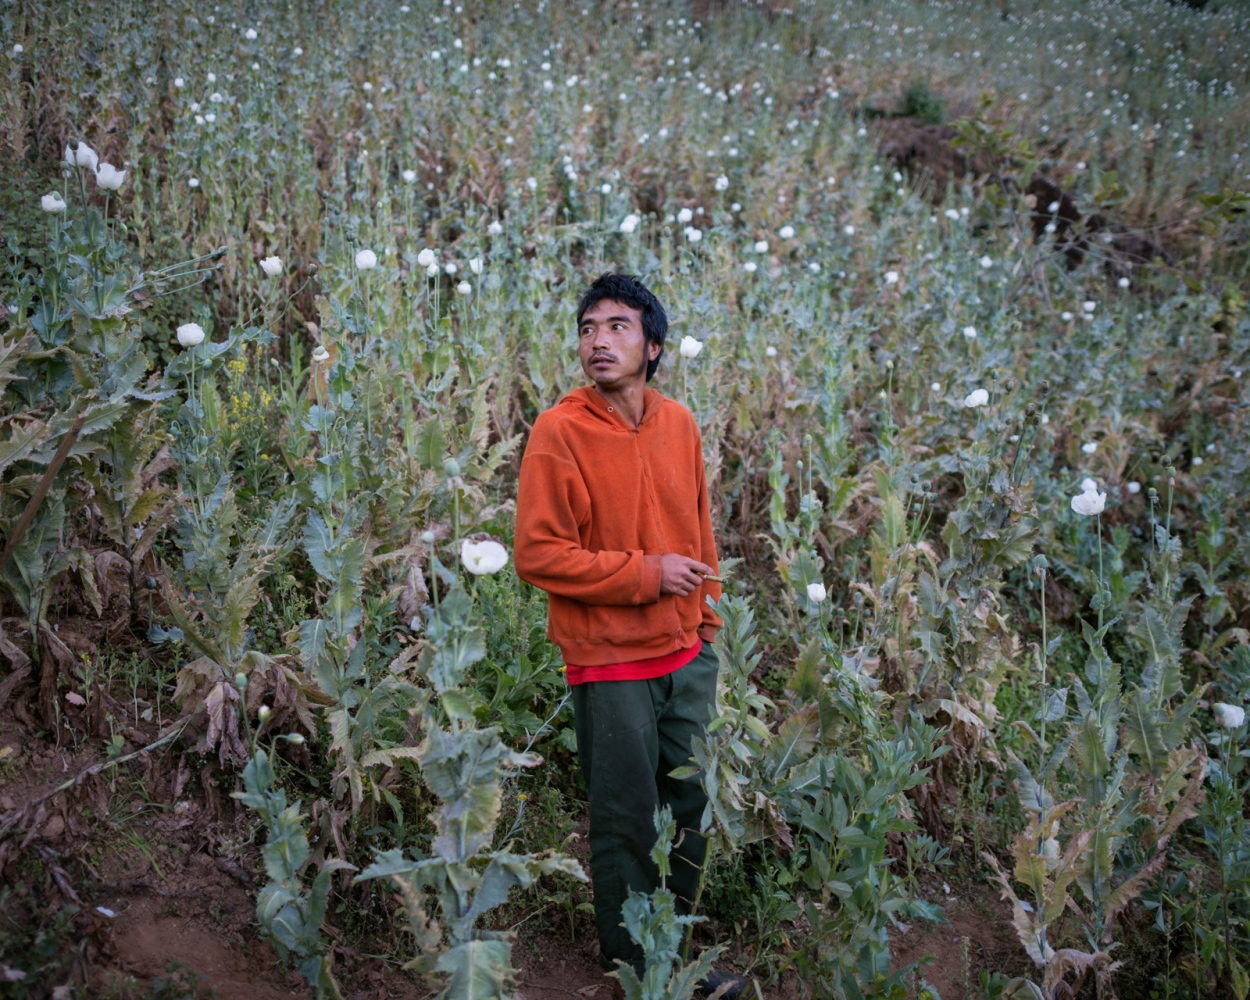 A opium farmer takes a smoke in the morning in his poppy filed deep in the mountains of Shan State, Myanmar. He owns the village´s largest field and support his while family and parents on the income of around $ 1000 dollars per season.